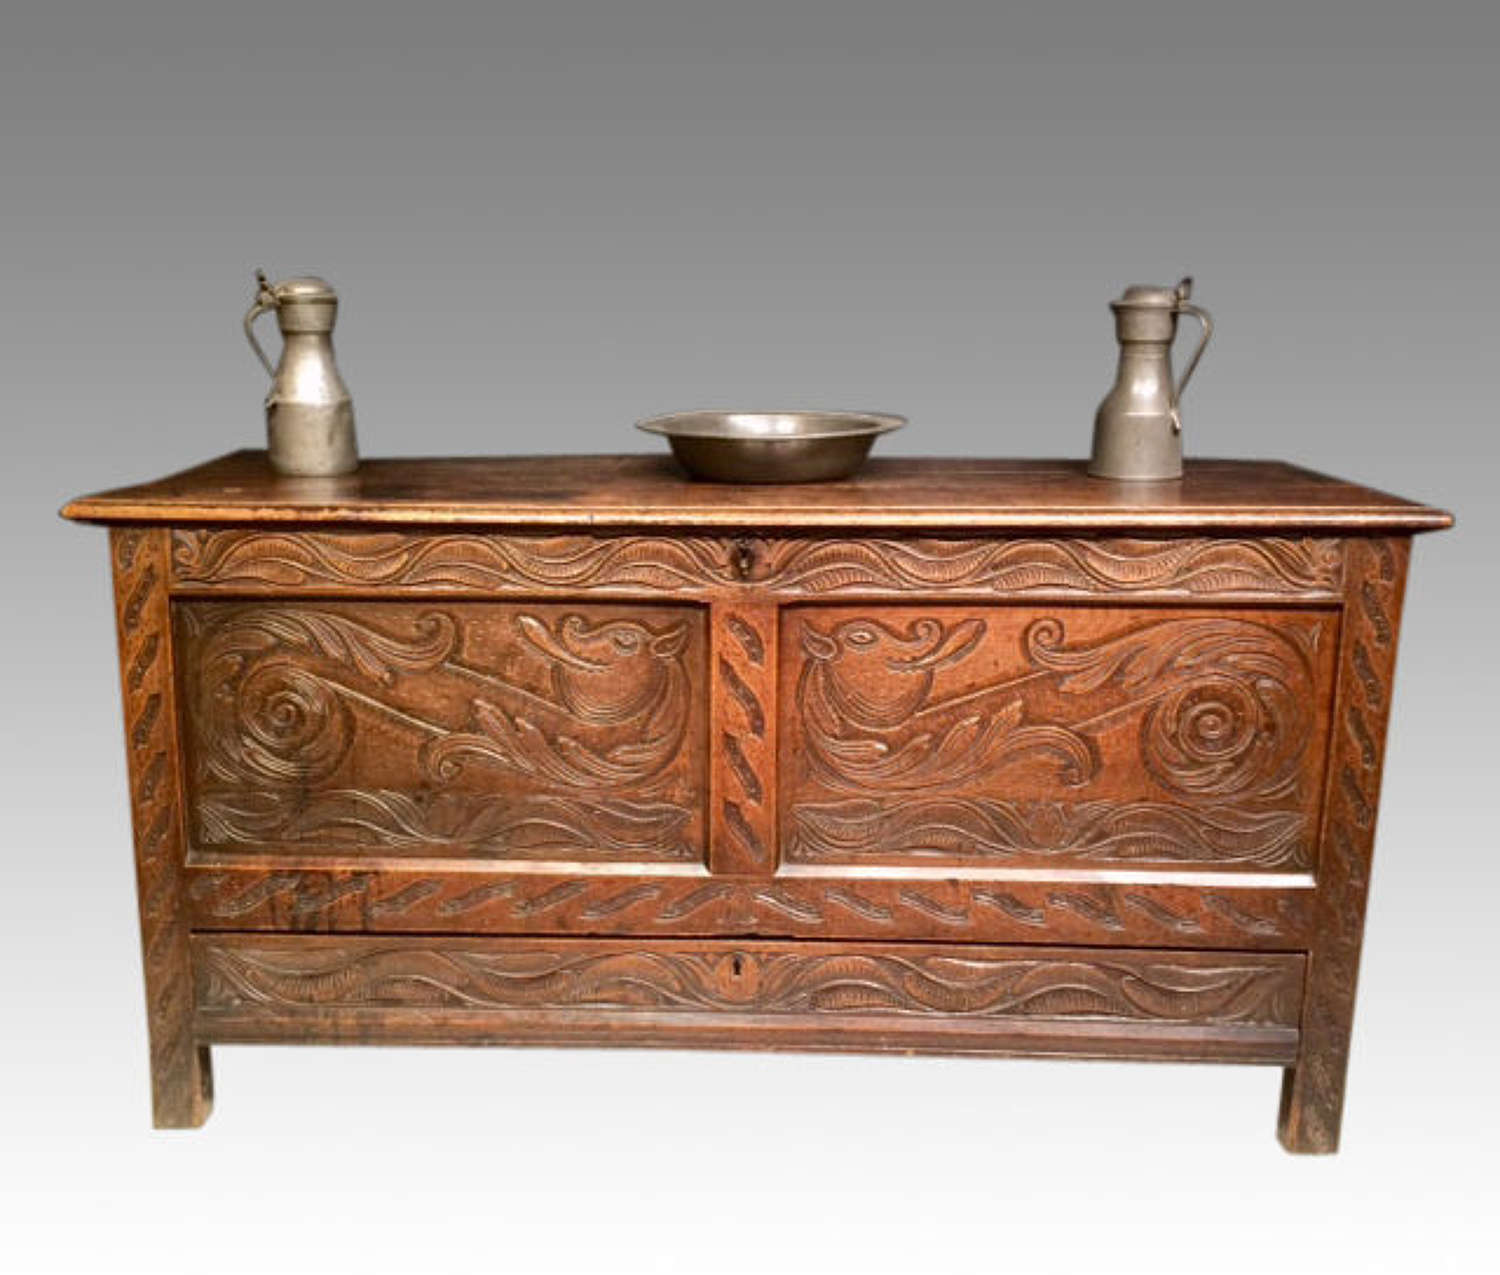 17th century carved oak coffer.